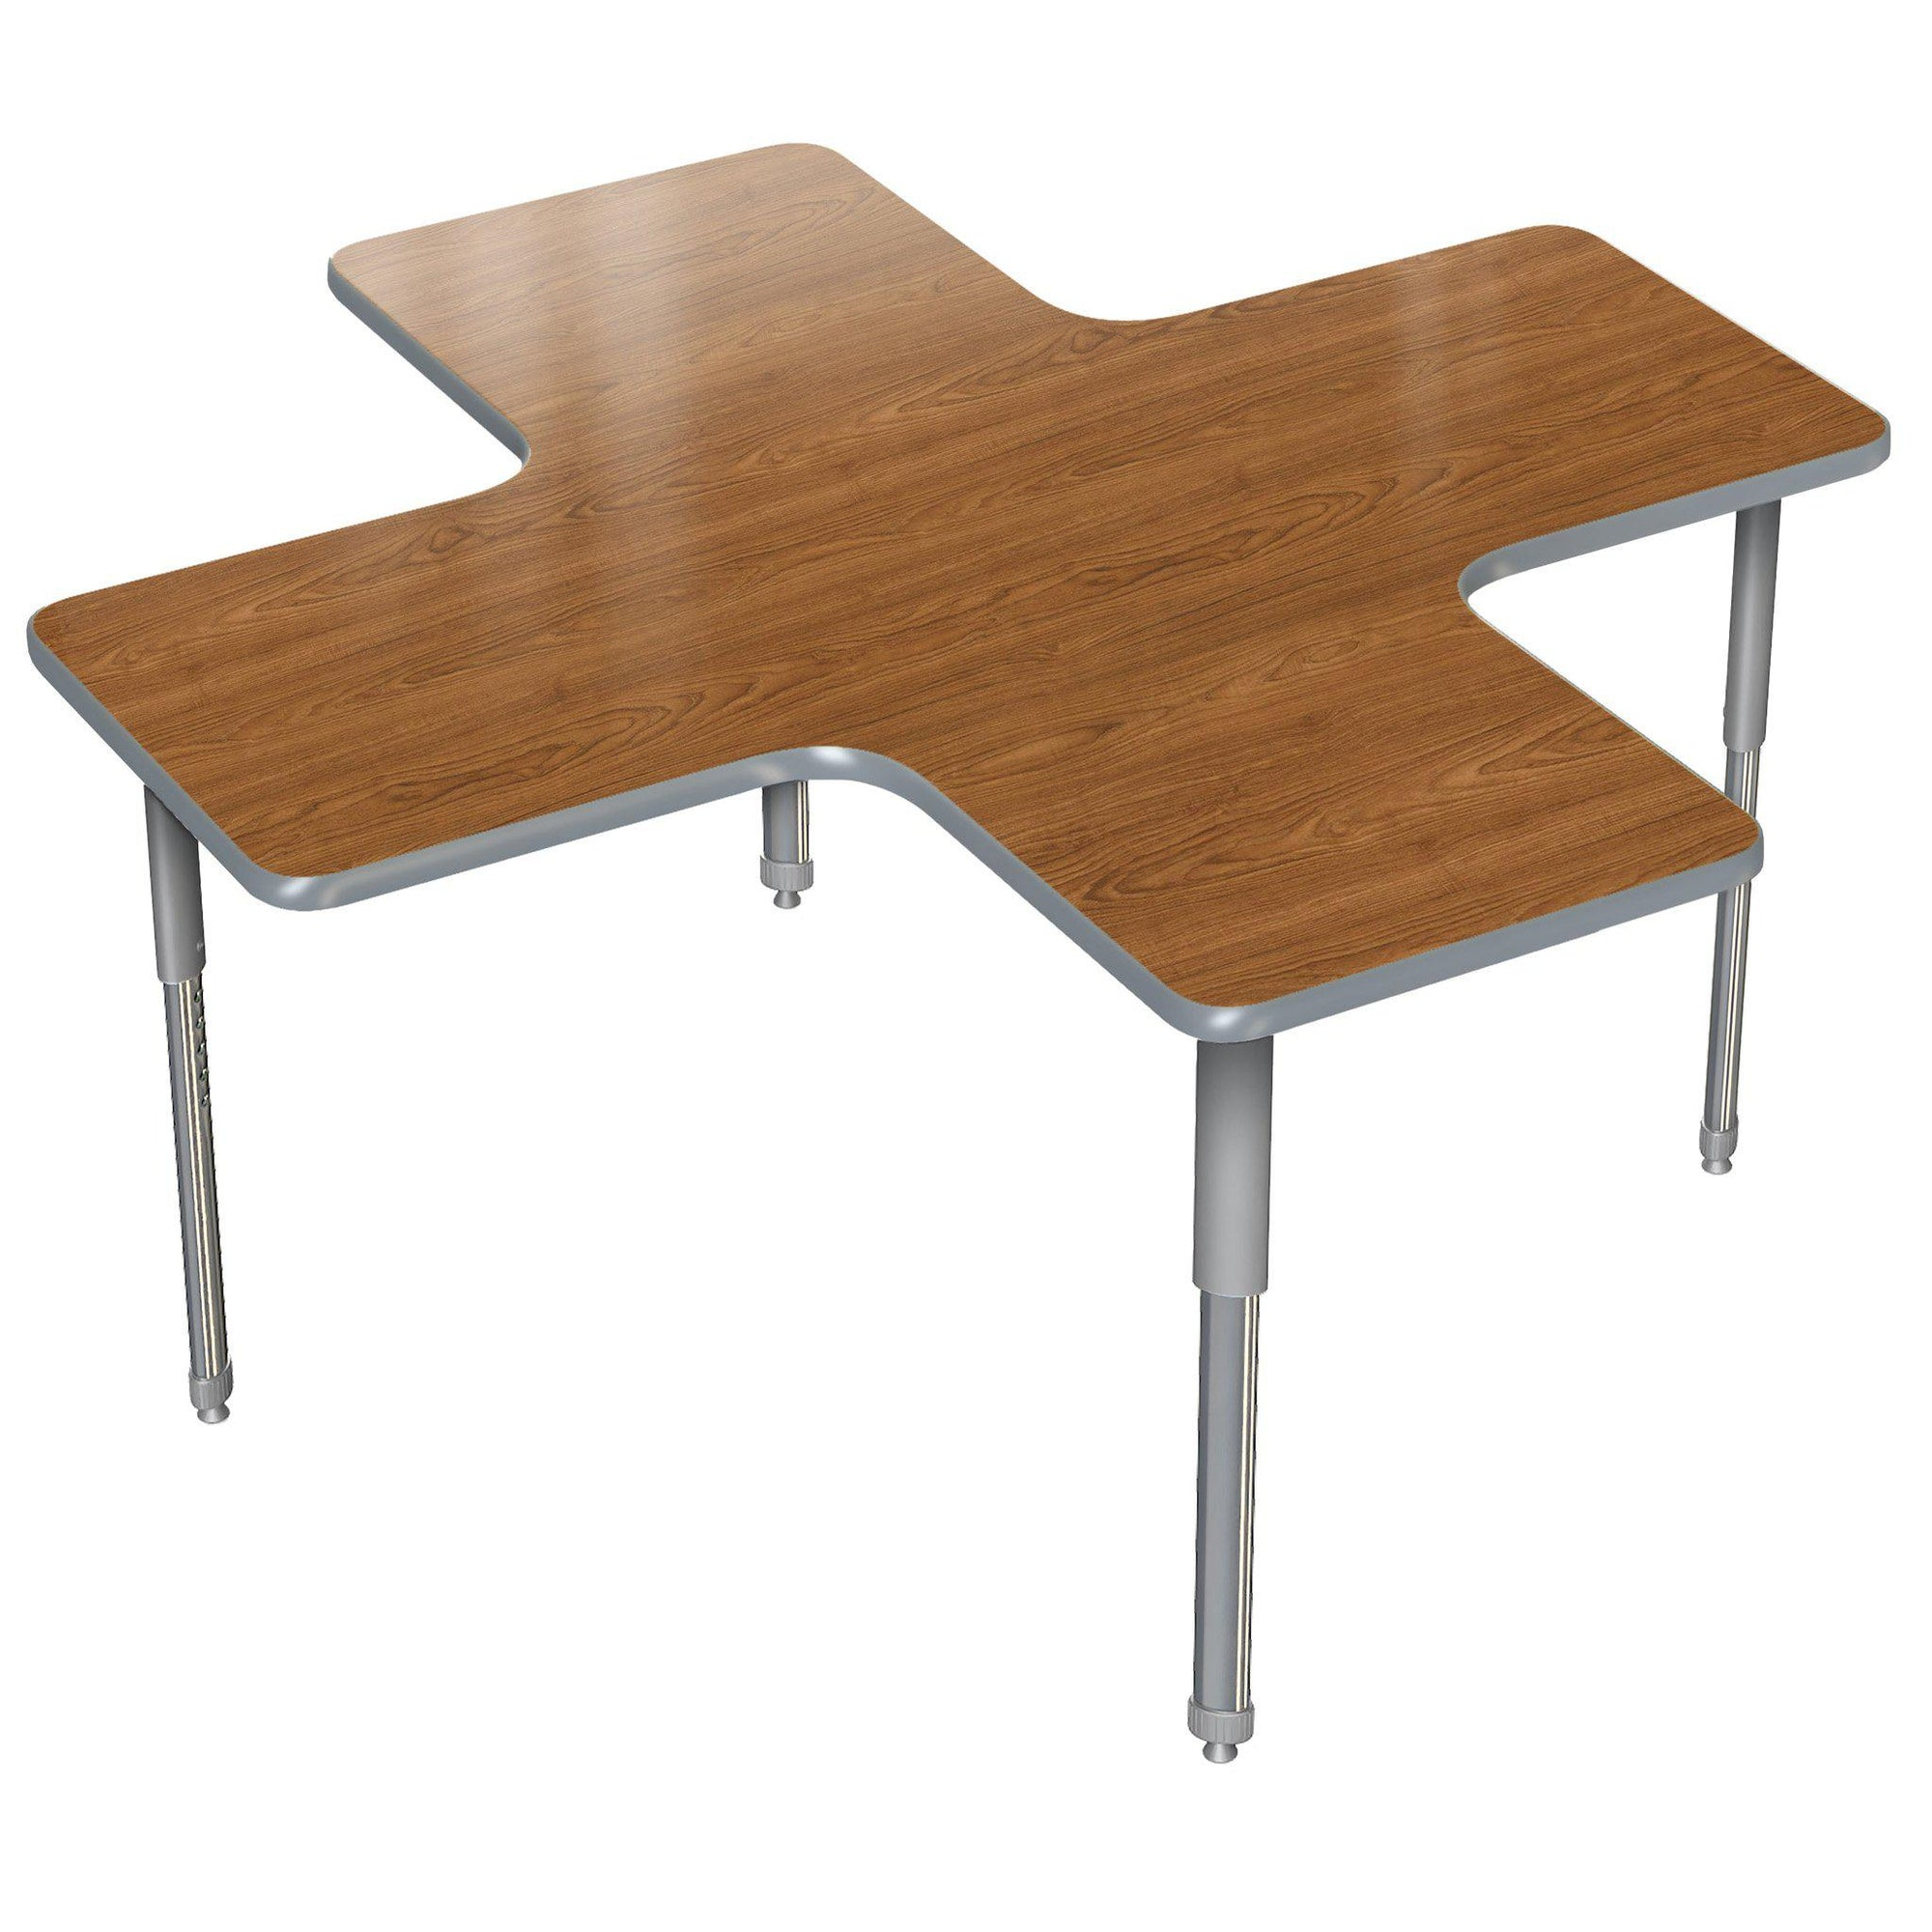 "Aero Activity Table, 60"" x 60"" A+, Oval Adjustable Height Legs"